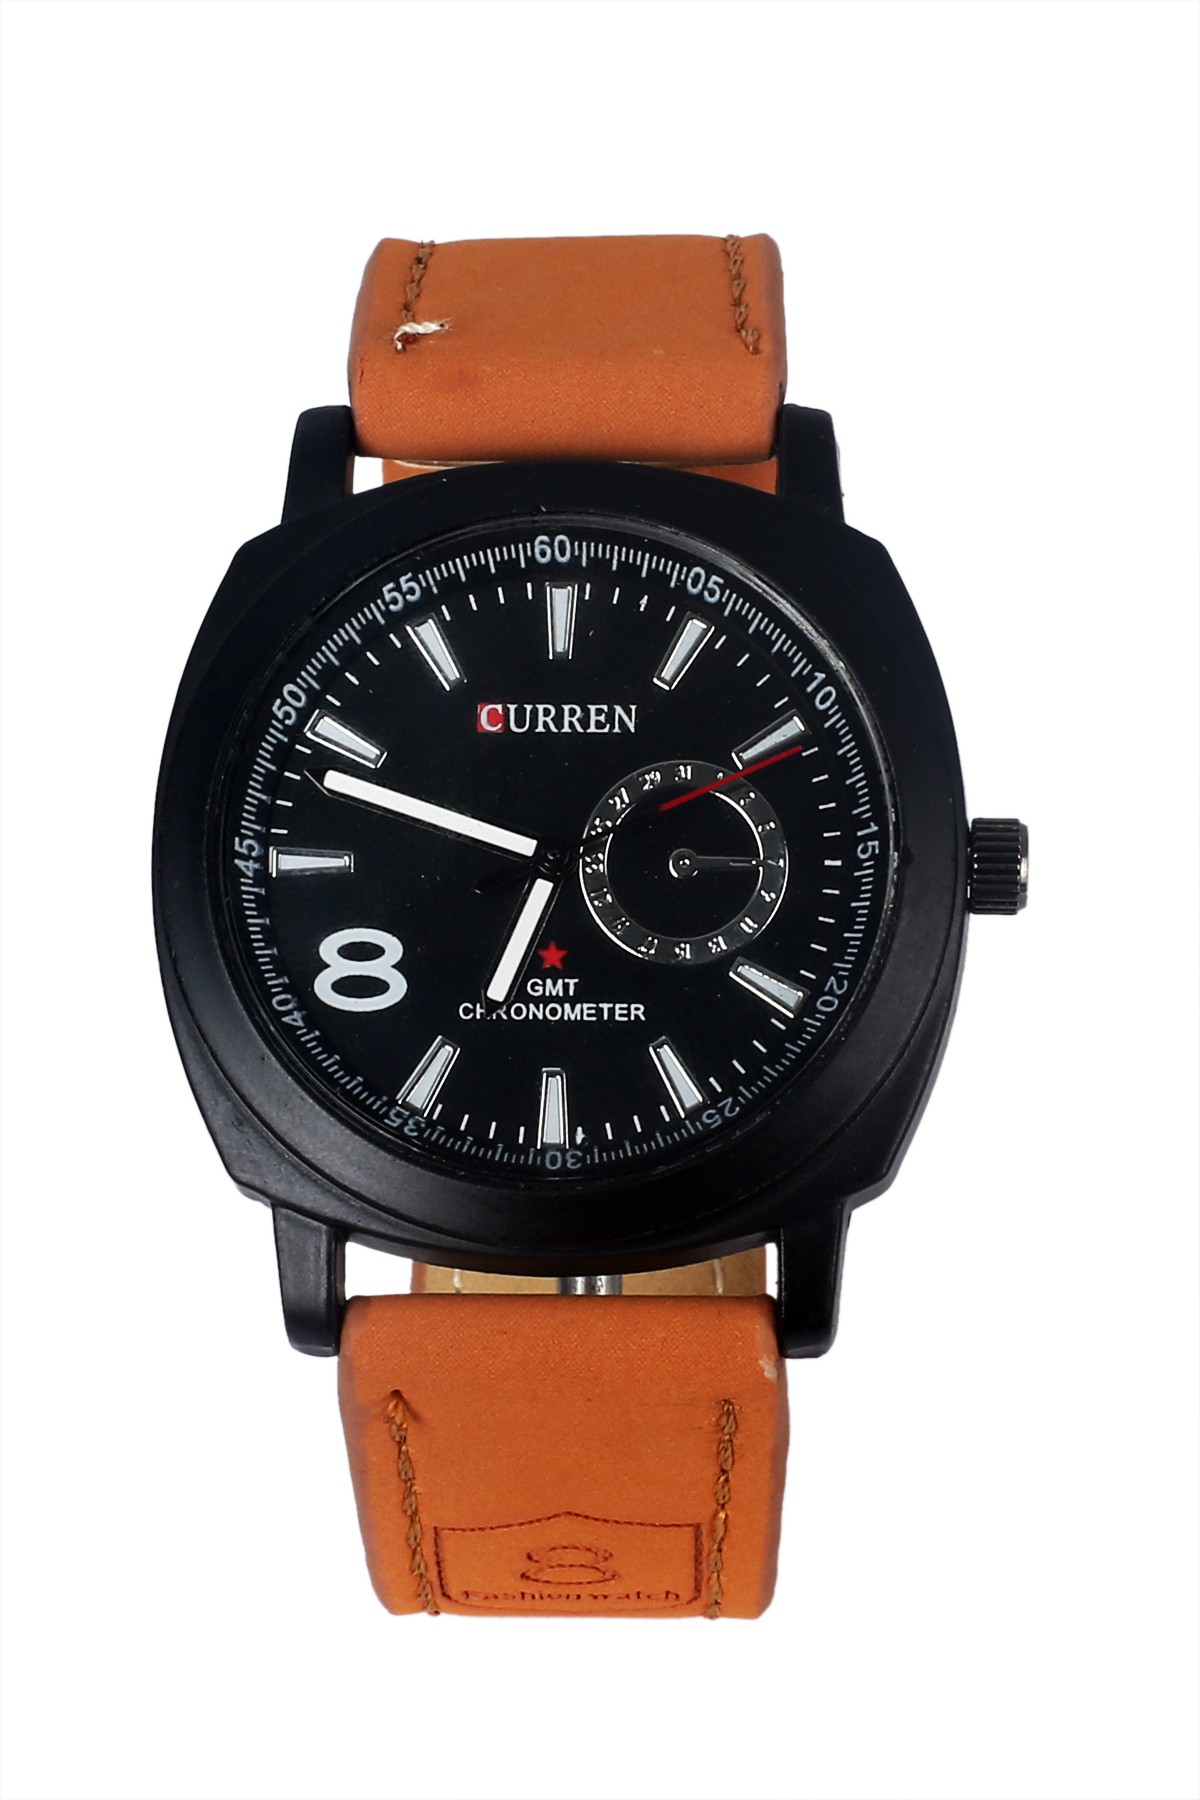 композиции curren chronometer watch price in india что волосы